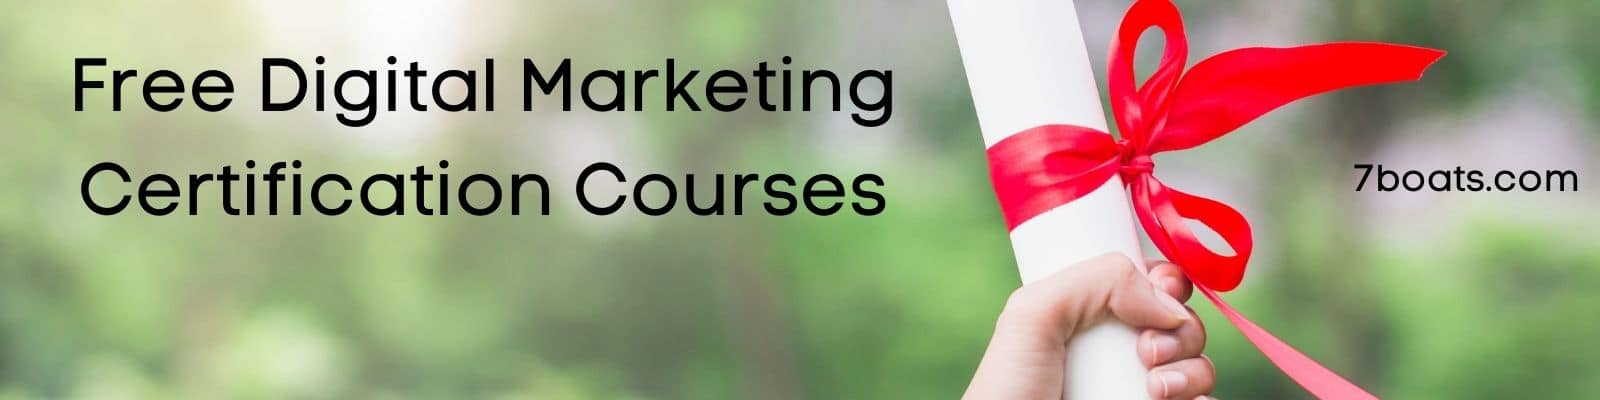 Best Free Digital Marketing Certification Courses